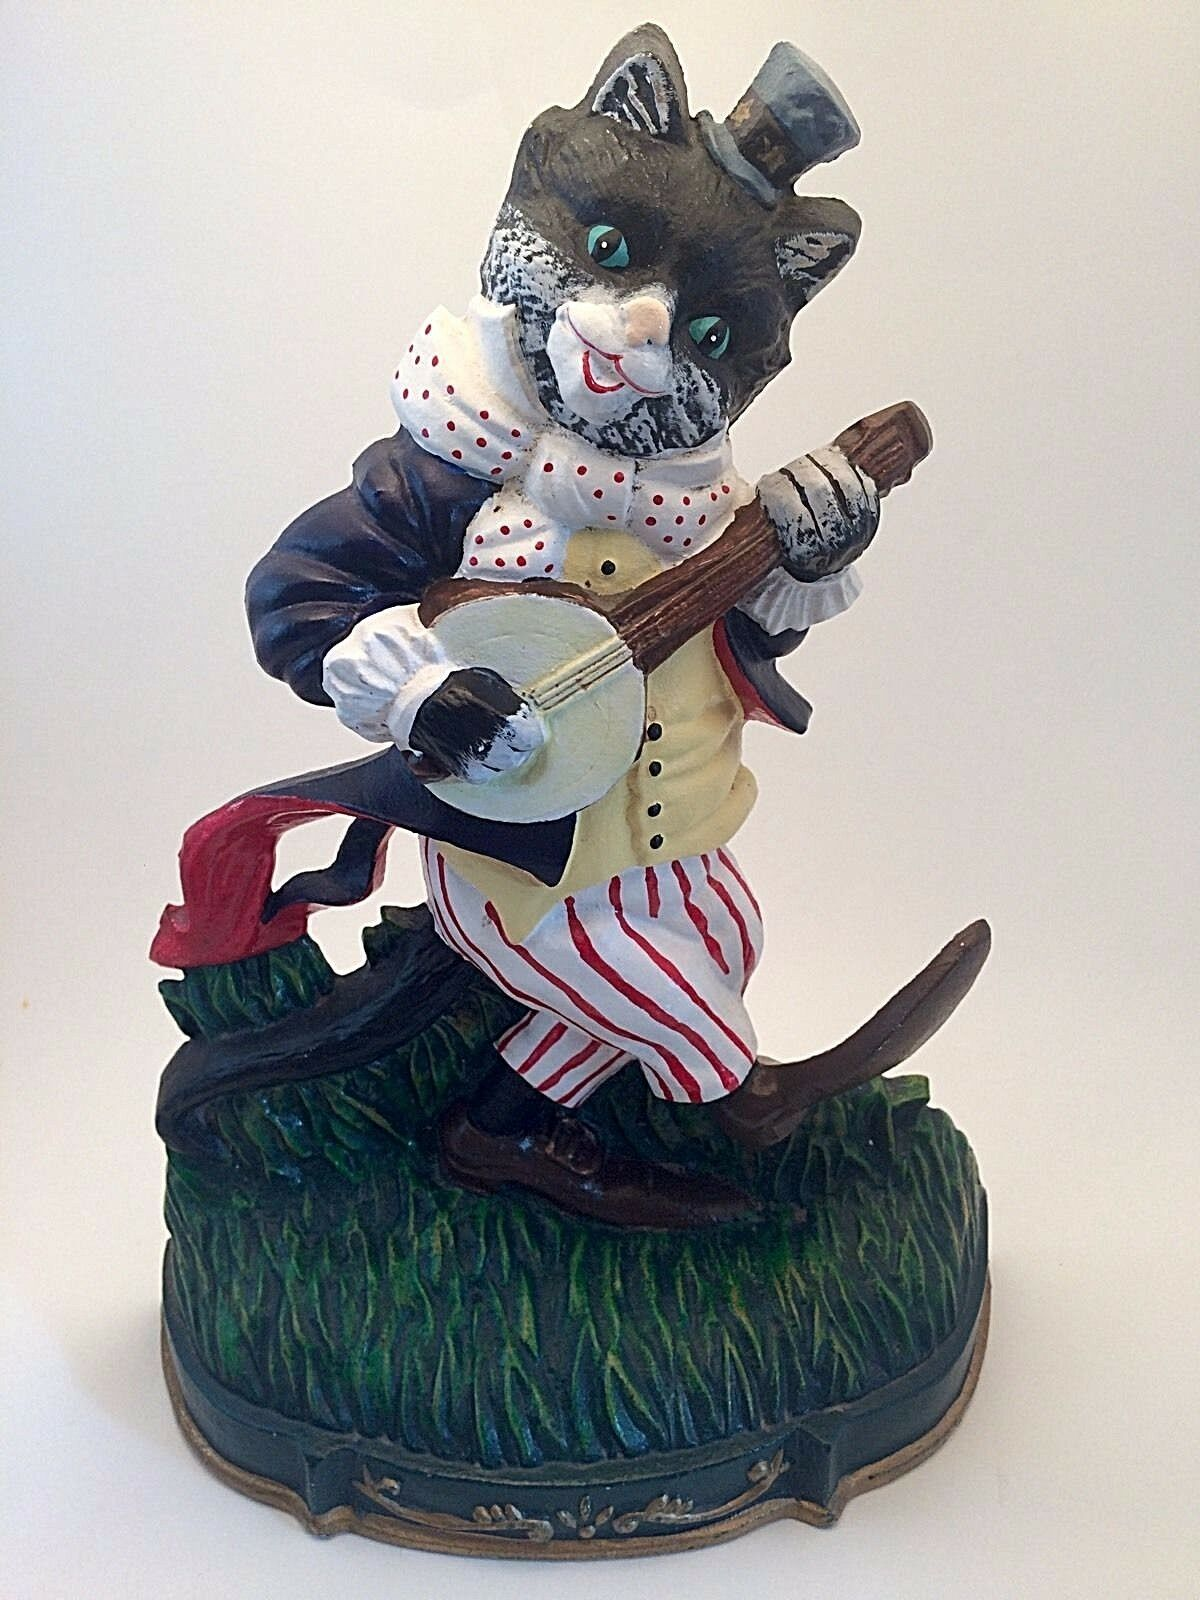 RARE   Vintage Cast Iron Door Stop   Cat Playing Banjo   Good Times Merry  Ryhmes 1 Of 5Only 1 Available RARE   Vintage Cast Iron Door Stop ...